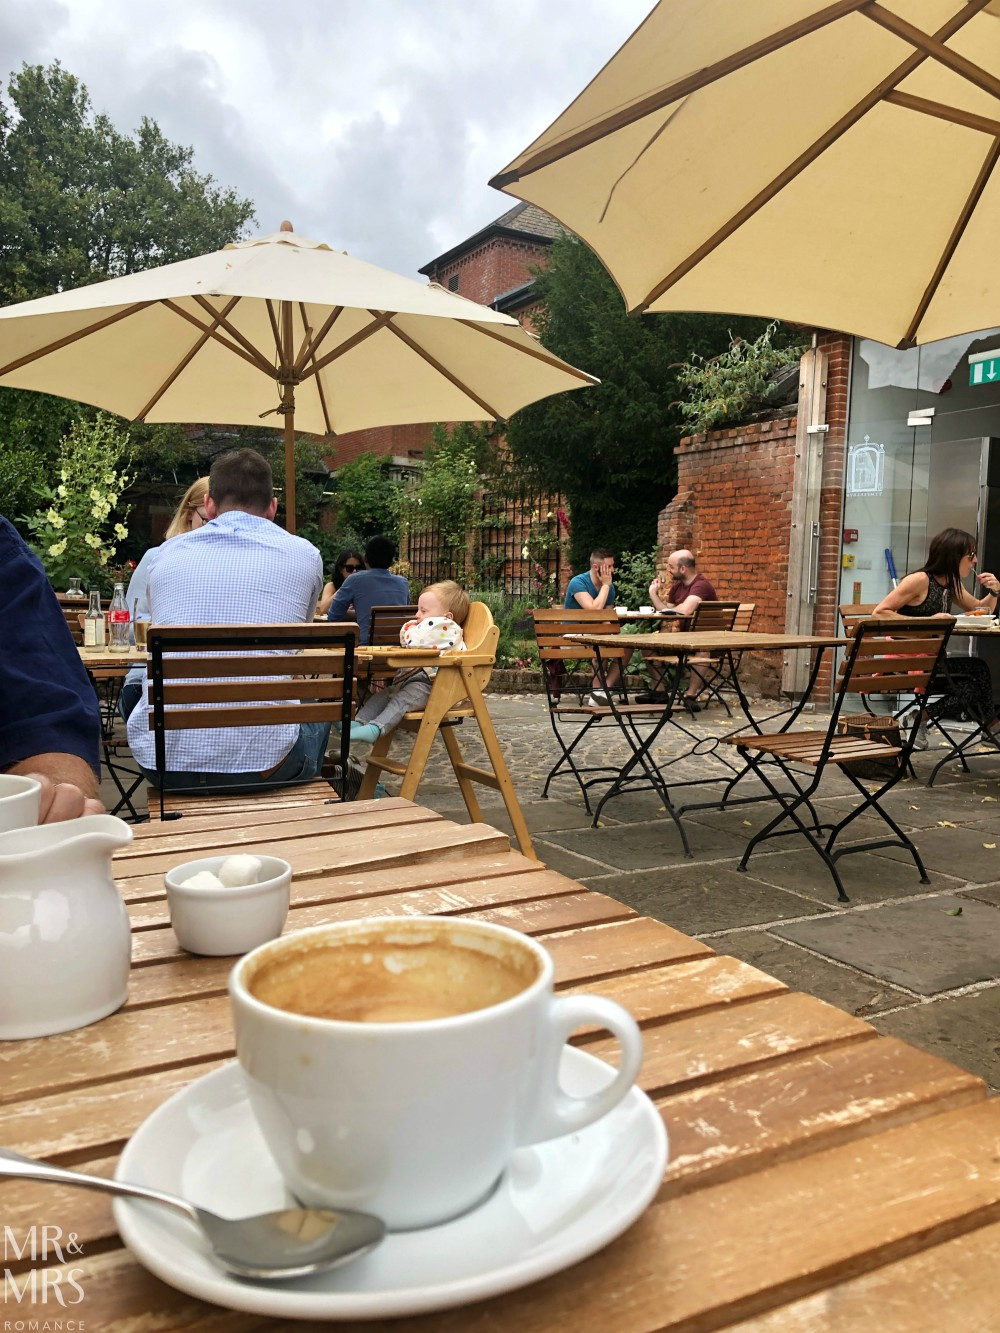 Tymperley's Cafe, Colchester